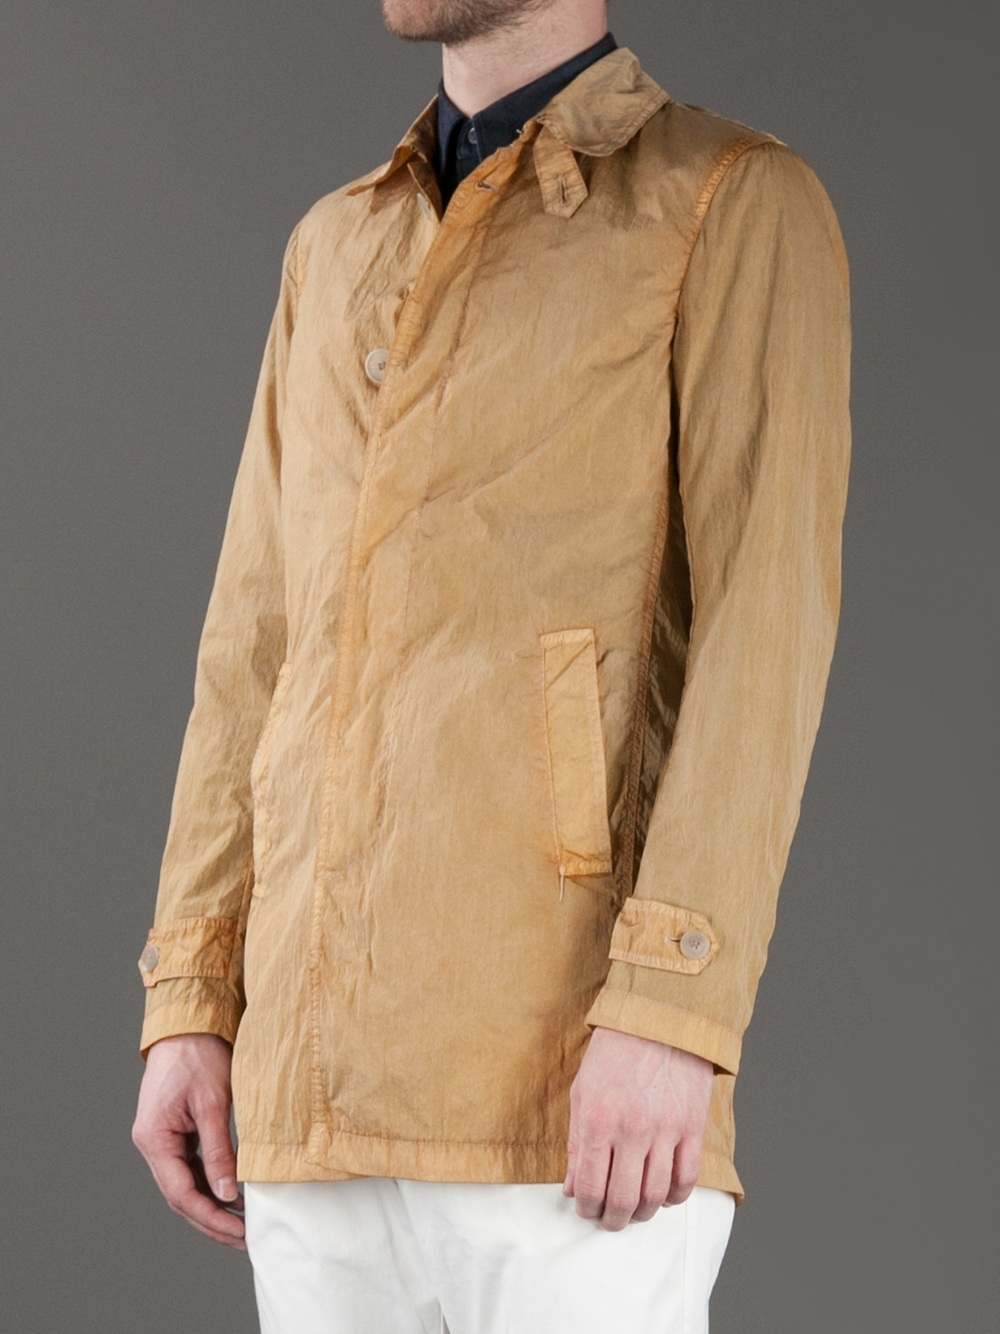 hevo-mustard-trench-coat-product-3-7597481-402867255.jpeg